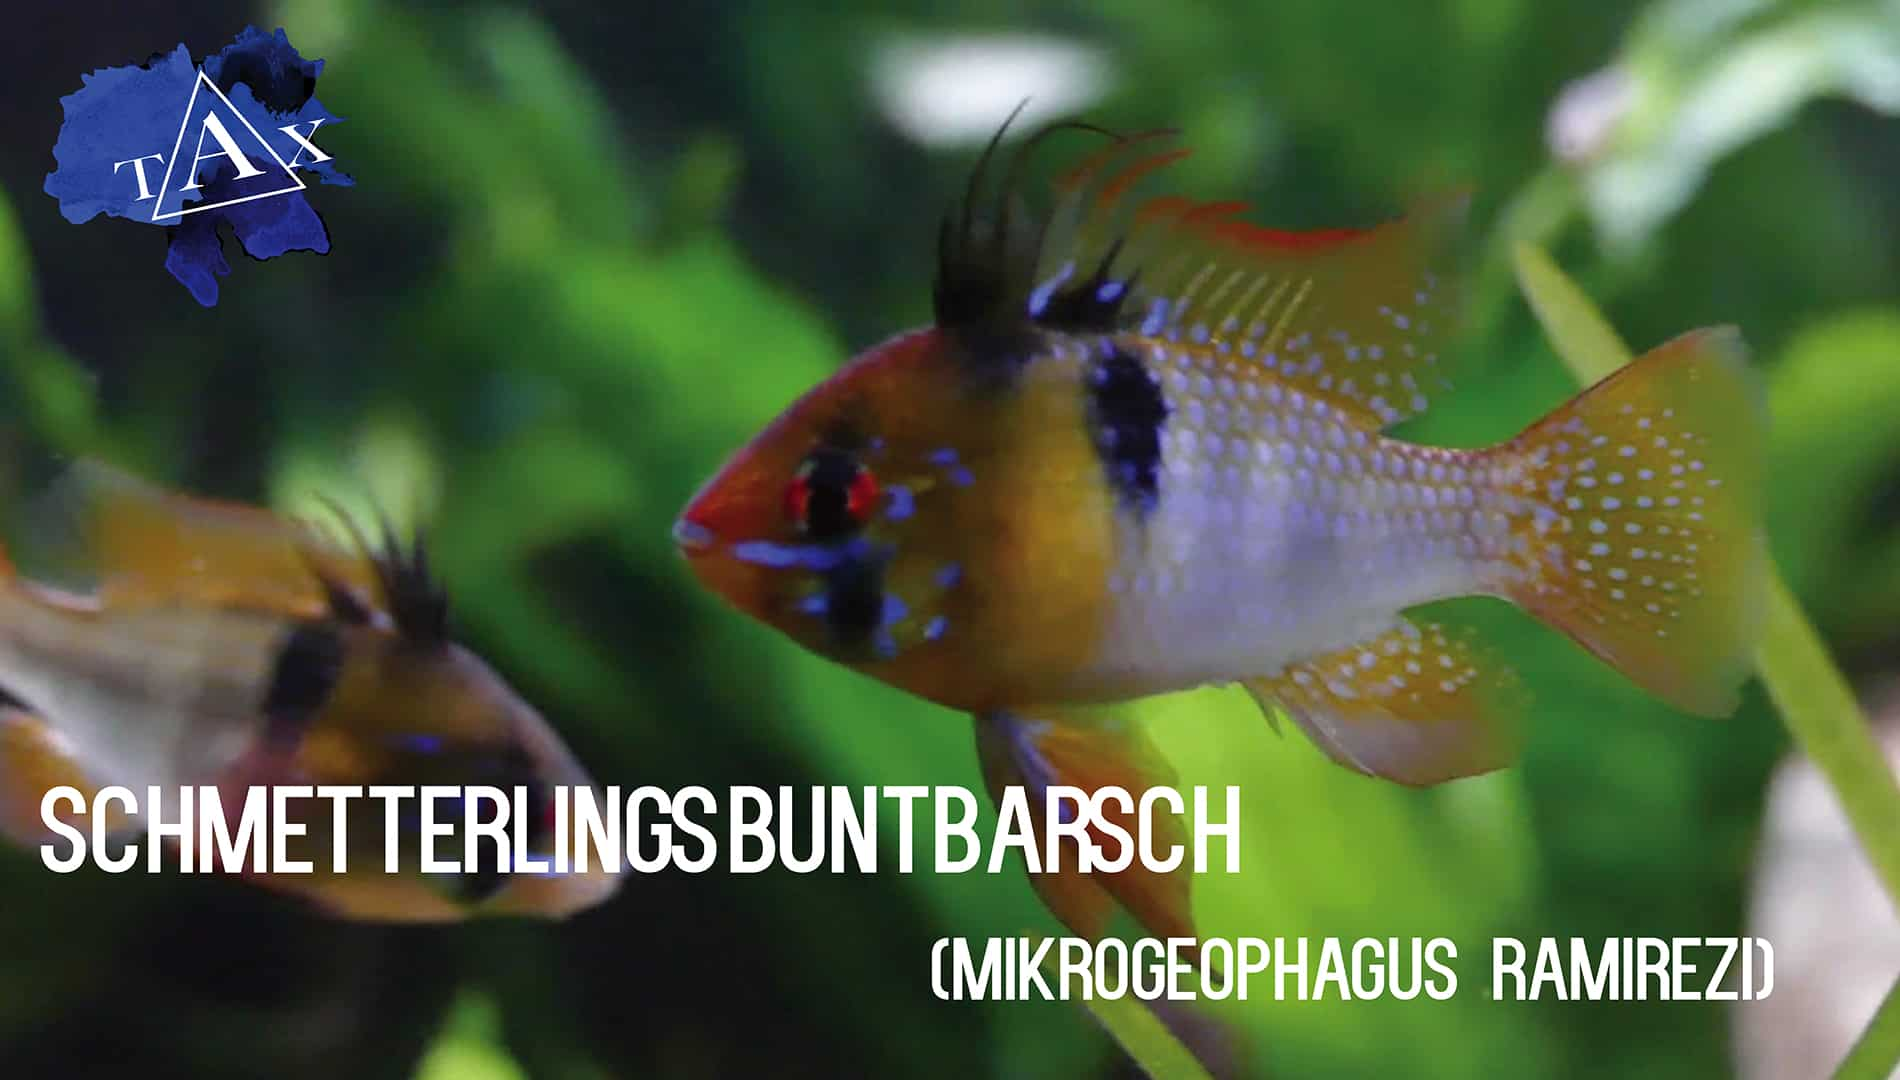 Tobis Aquaristikexzesse Video Tipp: Der Schmetterlingsbuntbarsch